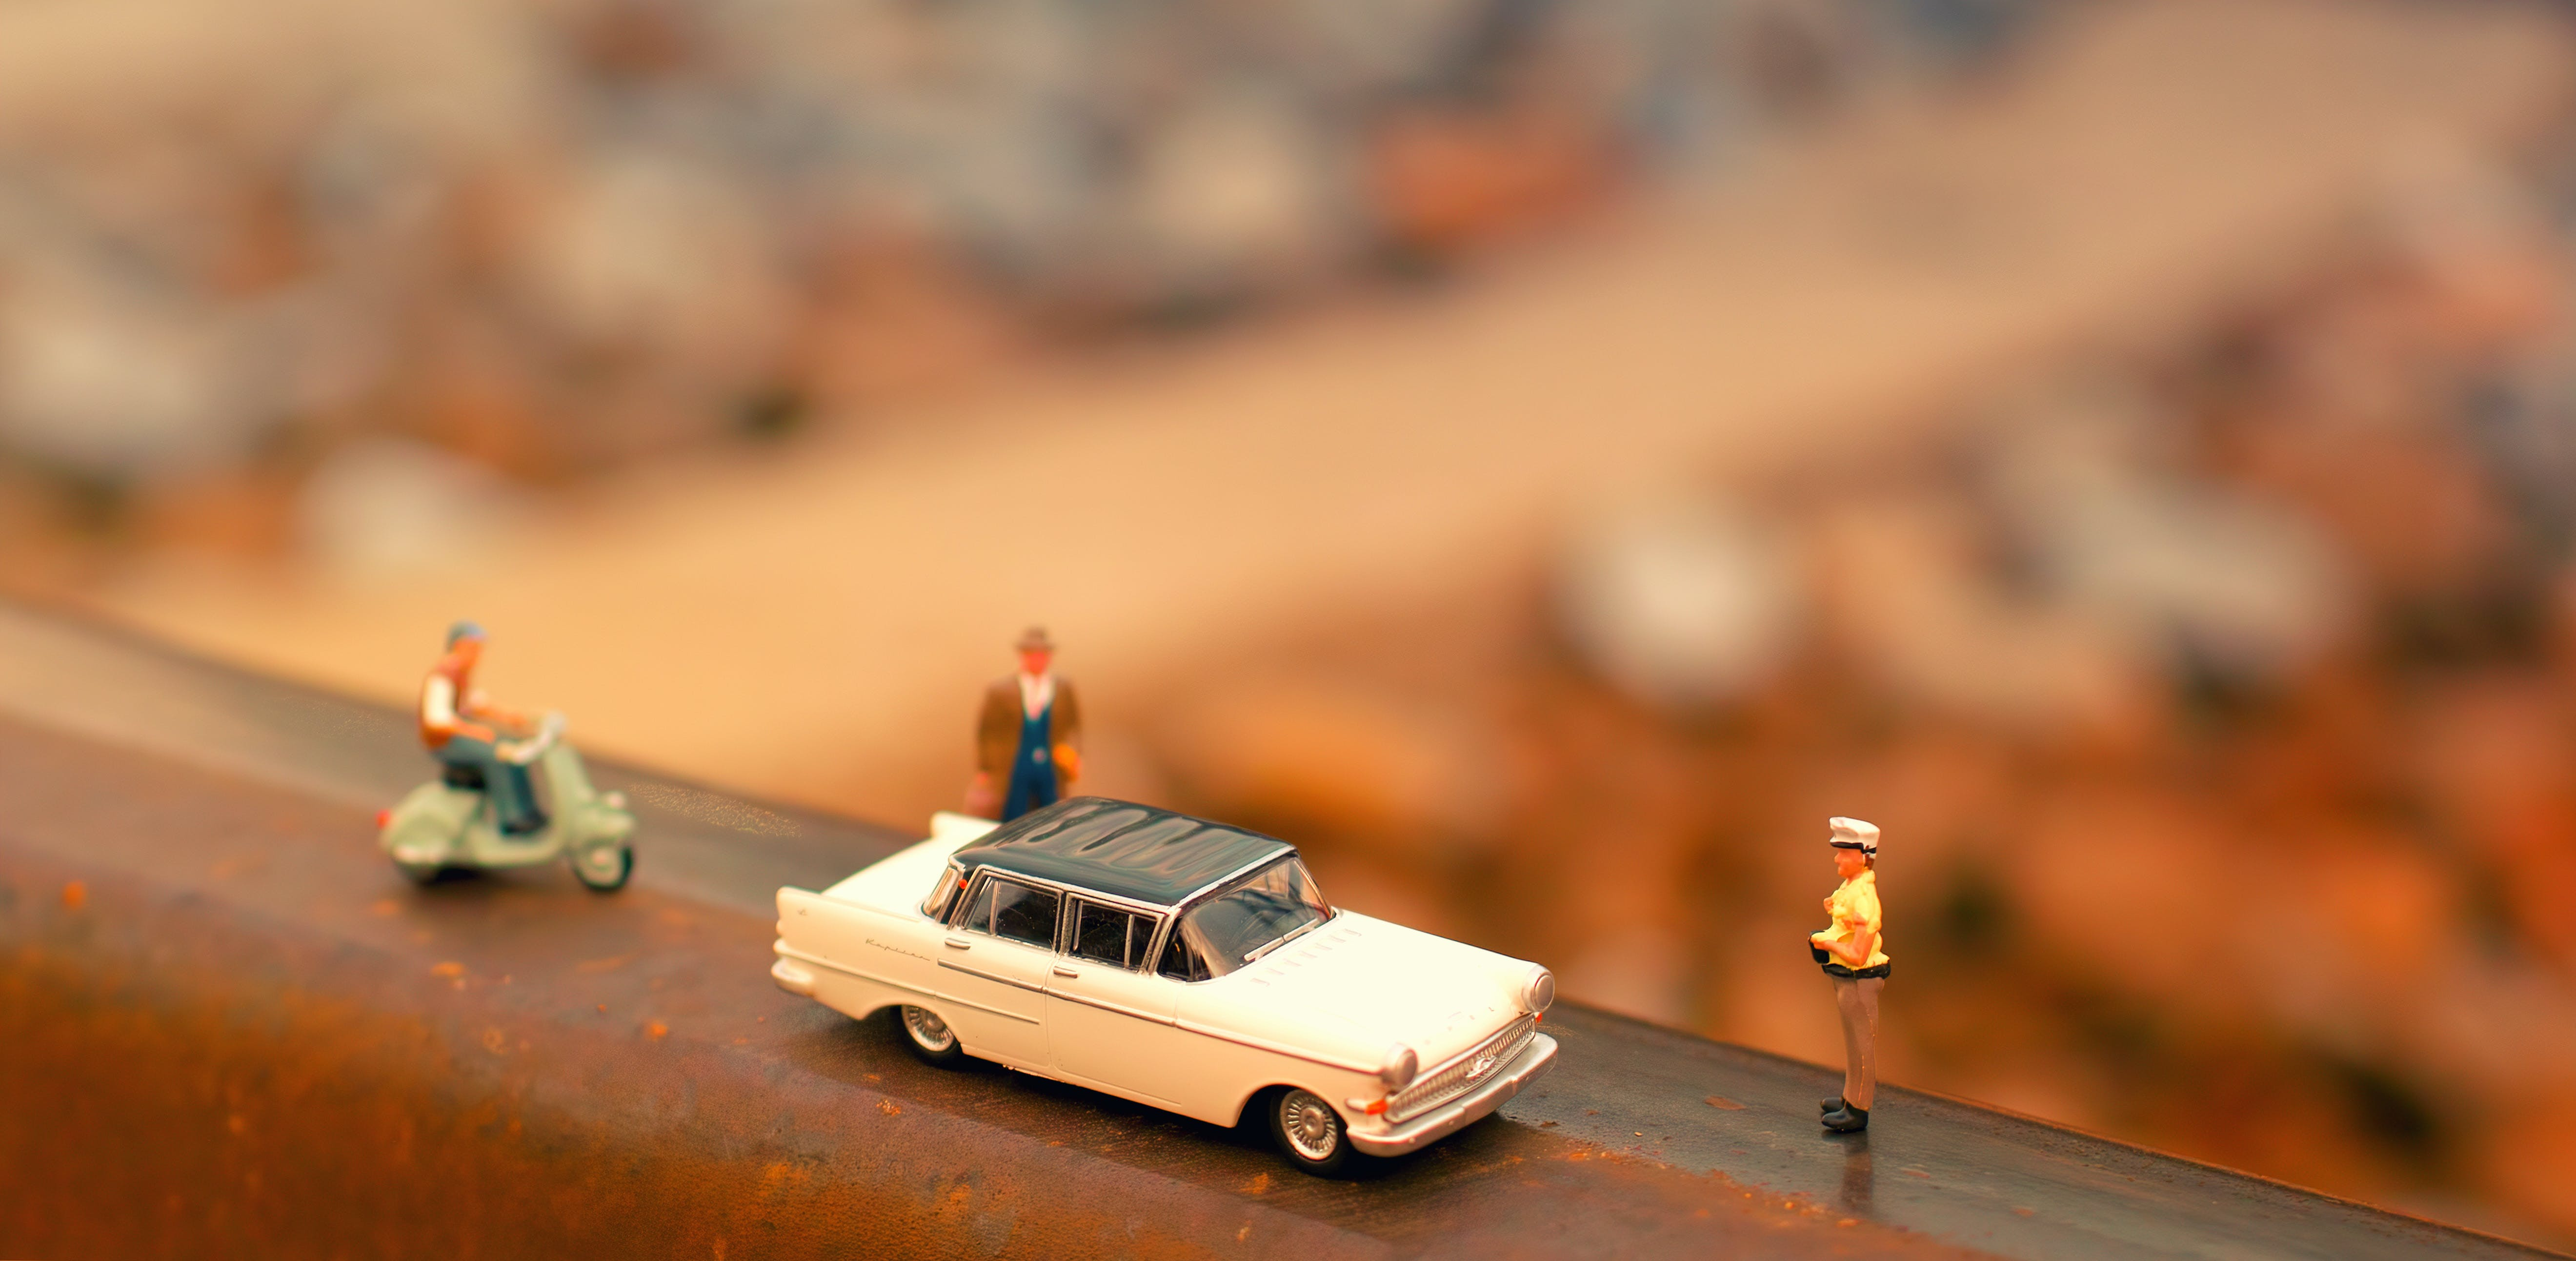 Tilt-shift Photography of Classic Car Scale Model Near Two Figurines